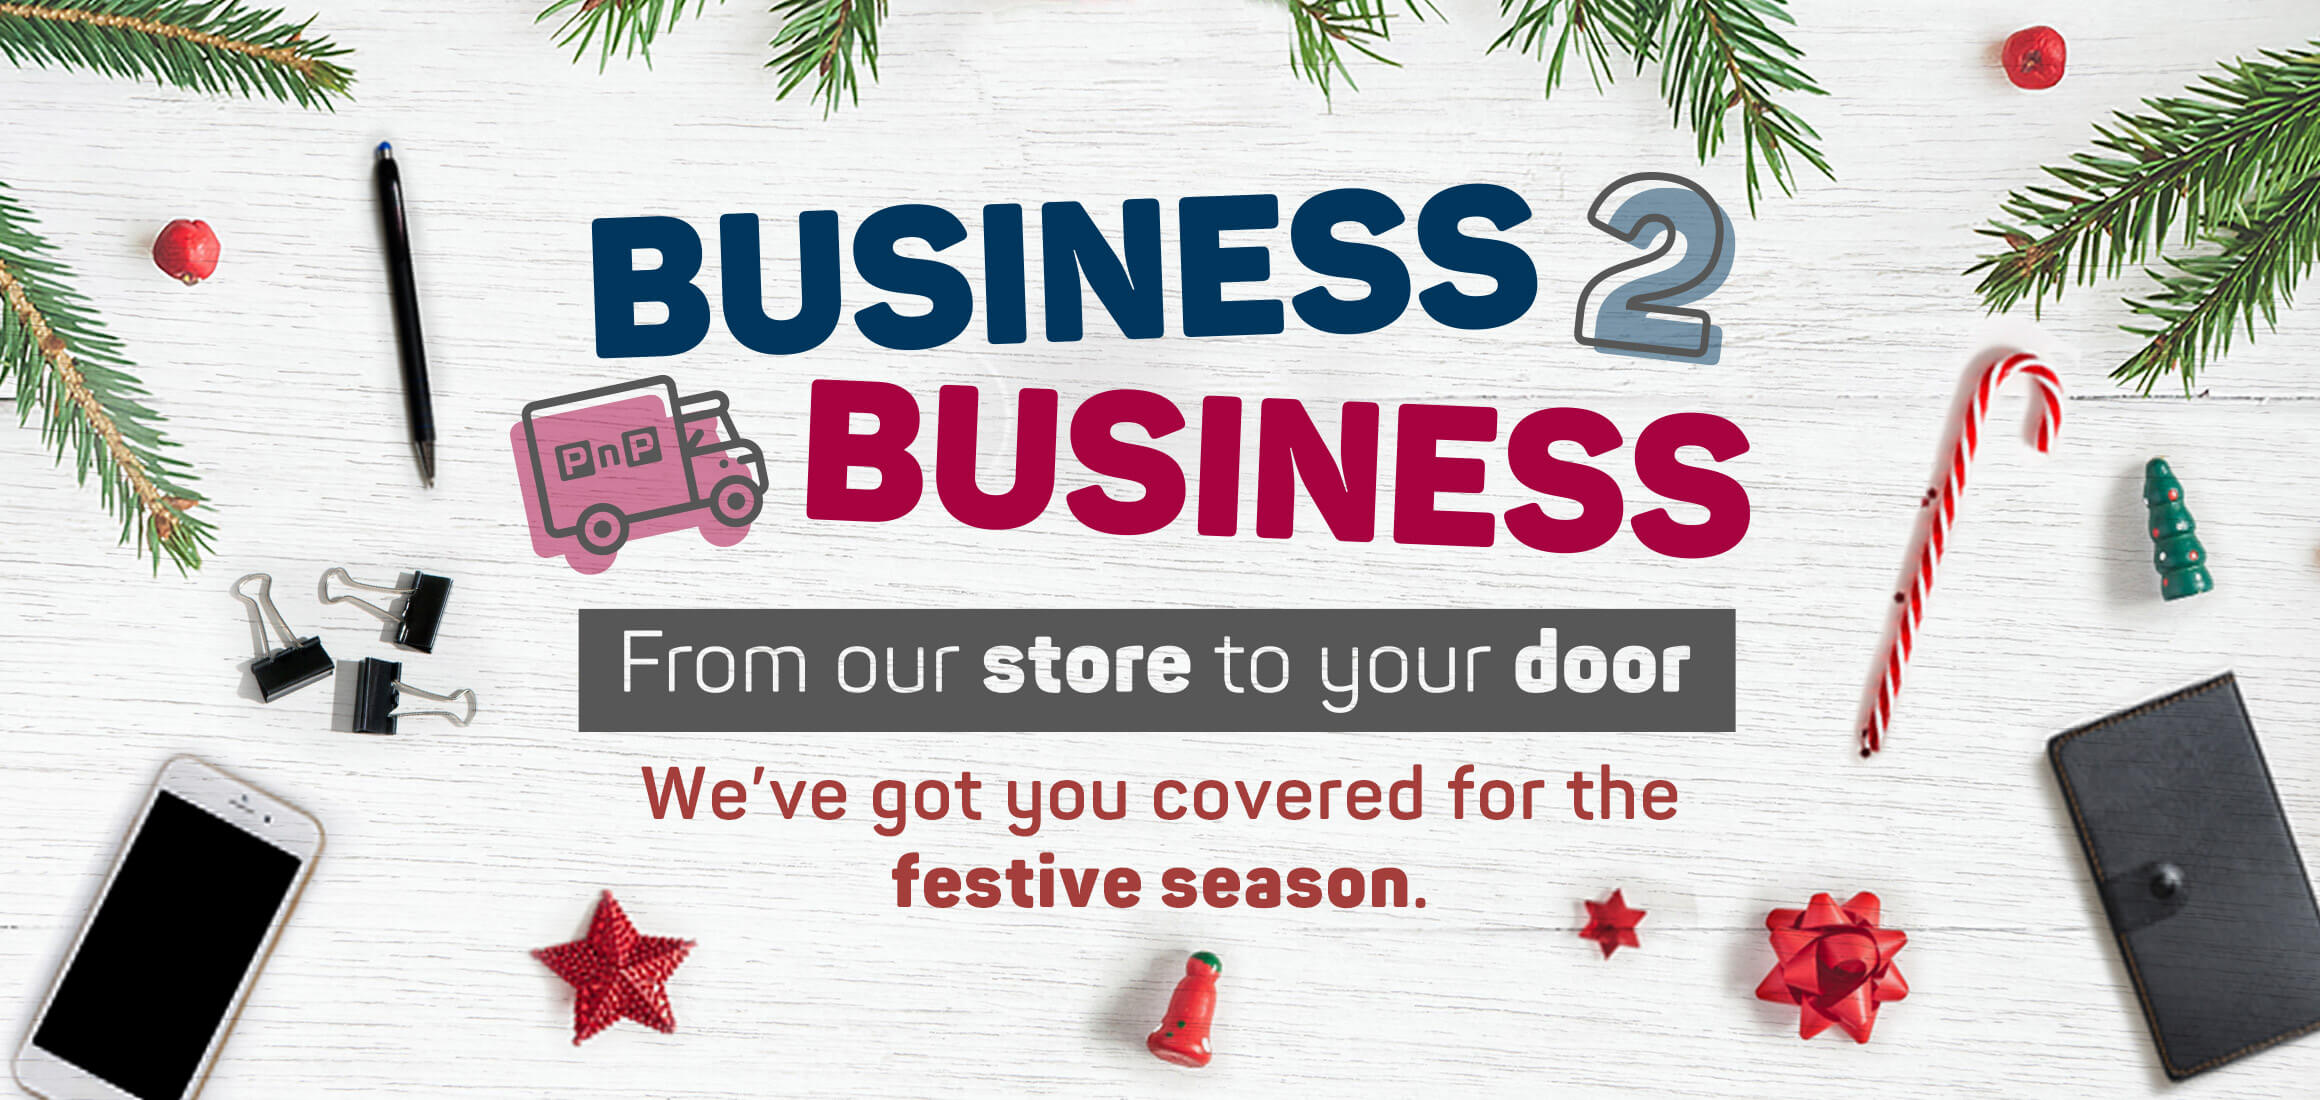 Business 2 business. From our store to your door. We've got you covered for the festive season.